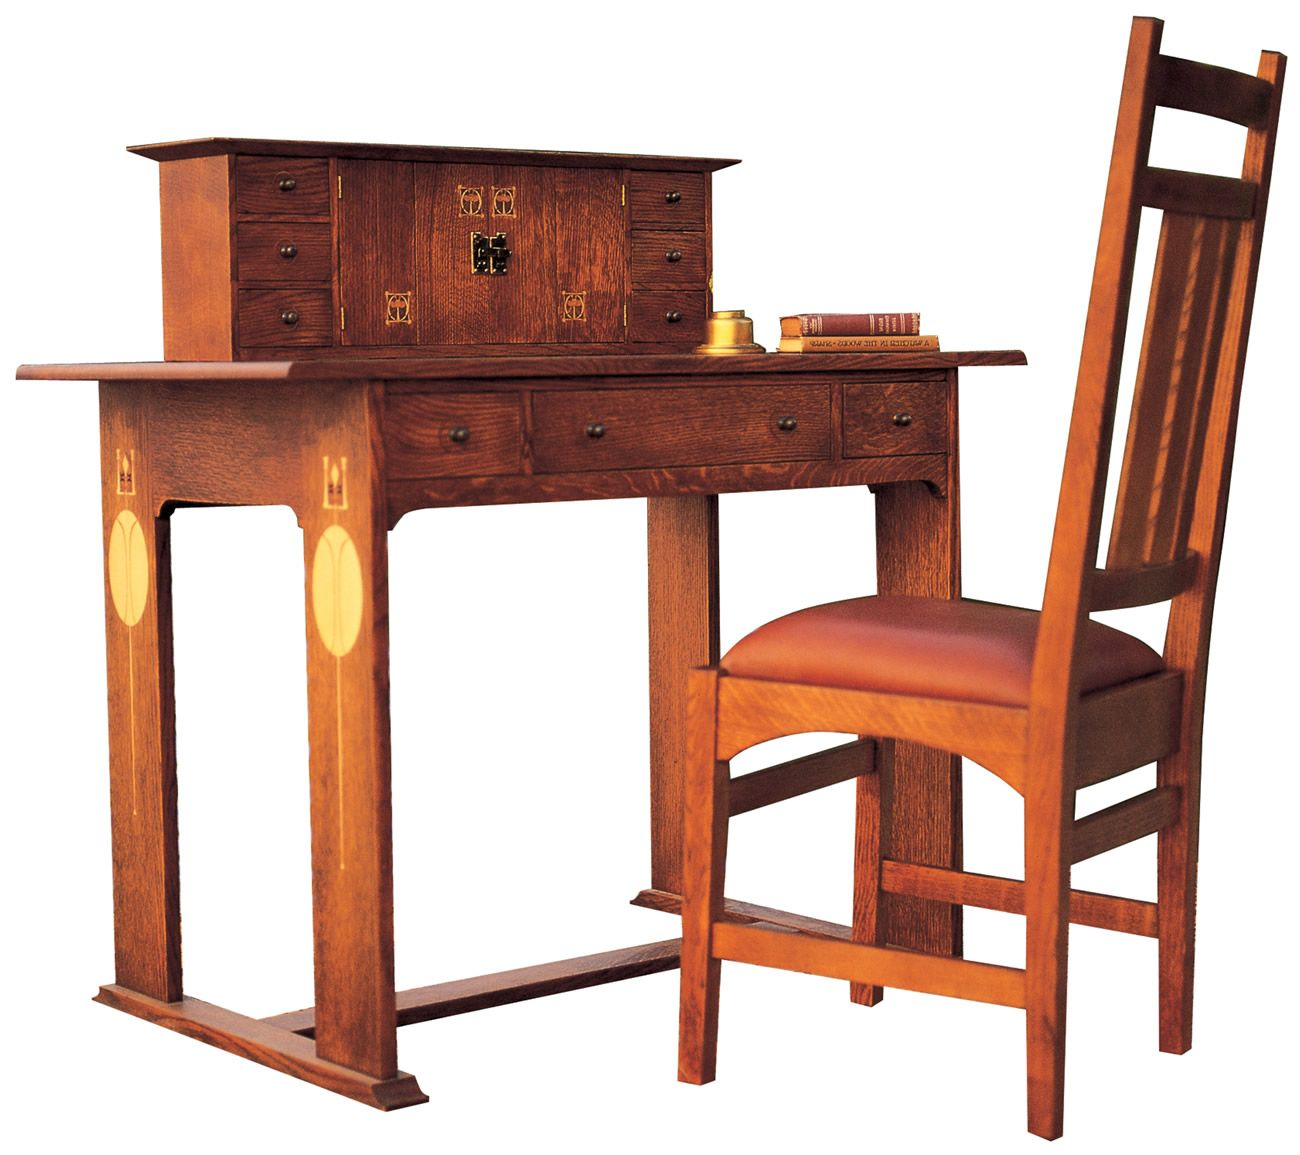 Stickley Furniture Harvey Ellis Desk & Chair with inlay